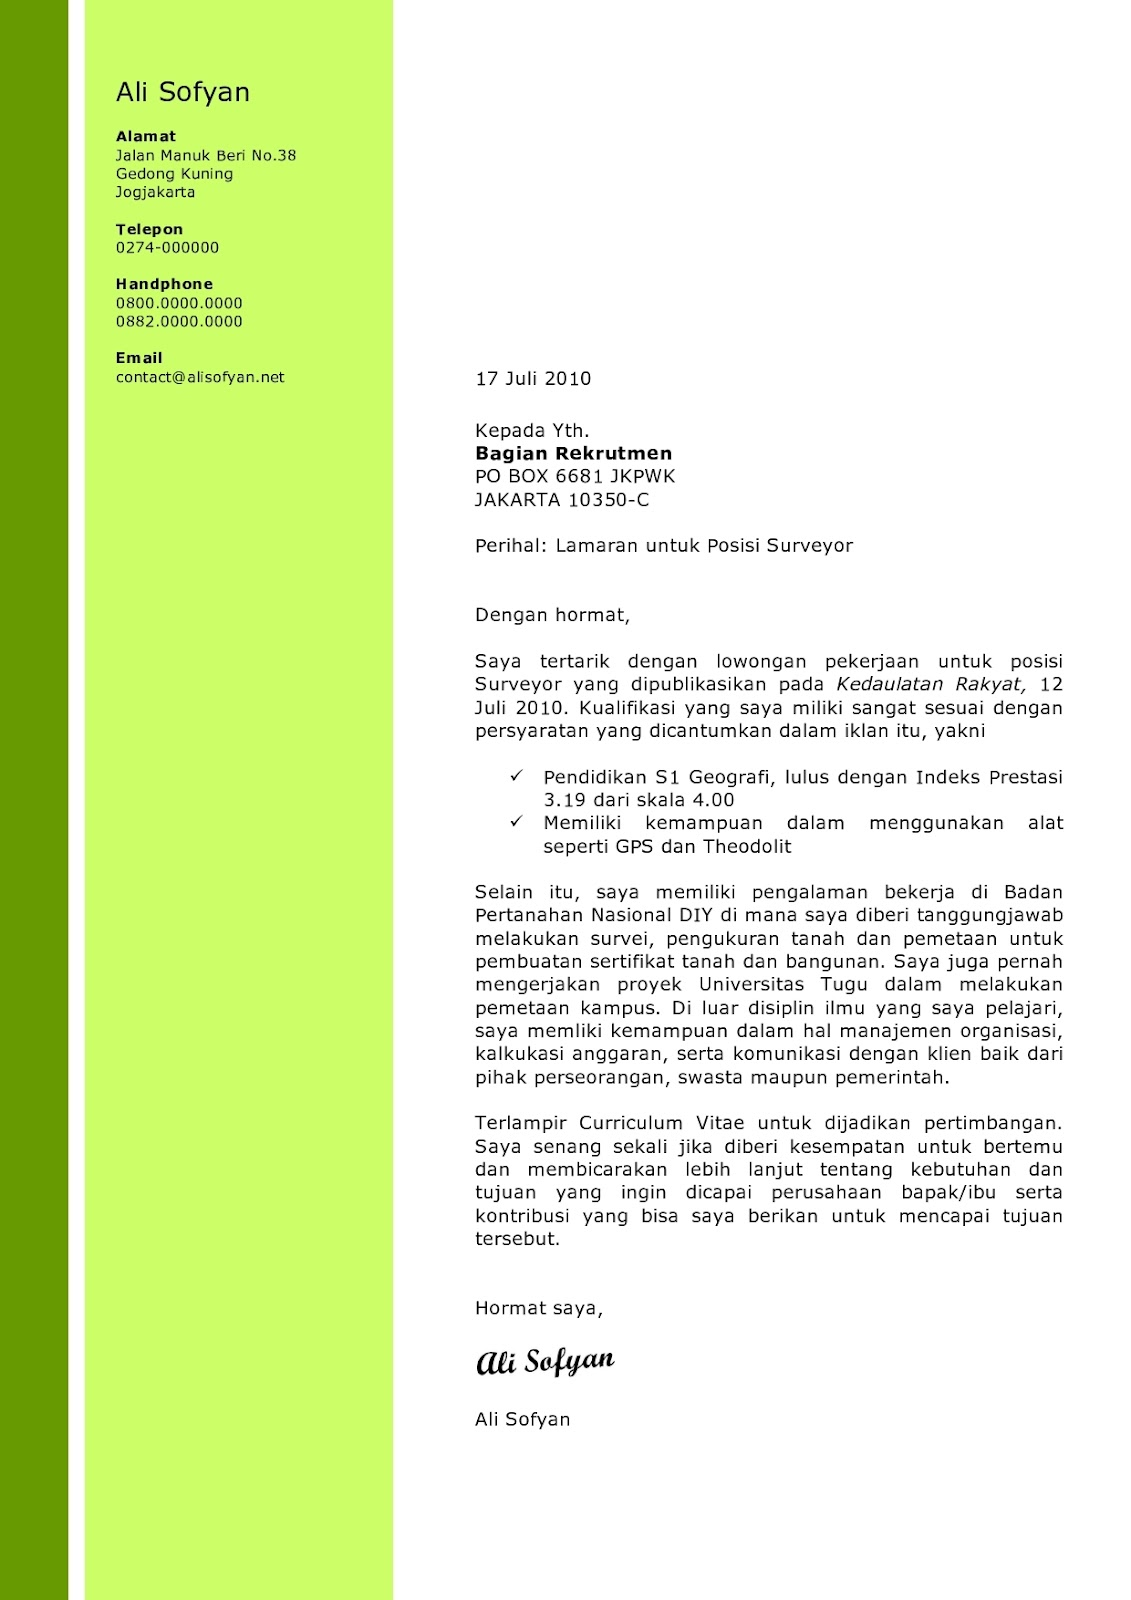 Cover Letter Graduate Engineer Example Top Essay Writing